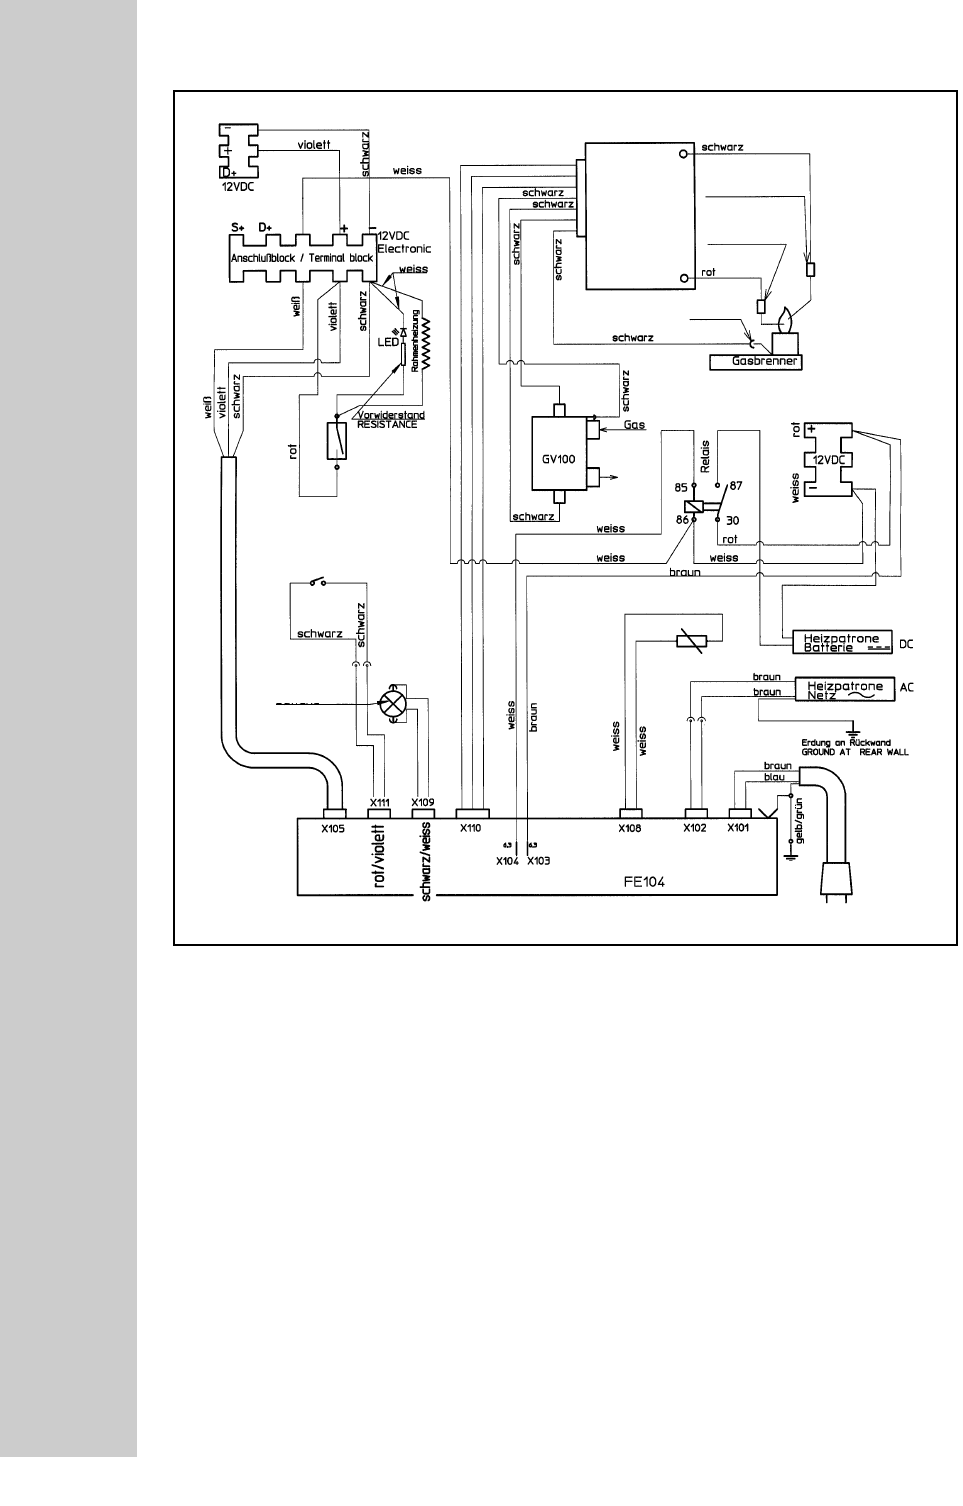 medium resolution of schematic wiring diagram dometic refrigerator